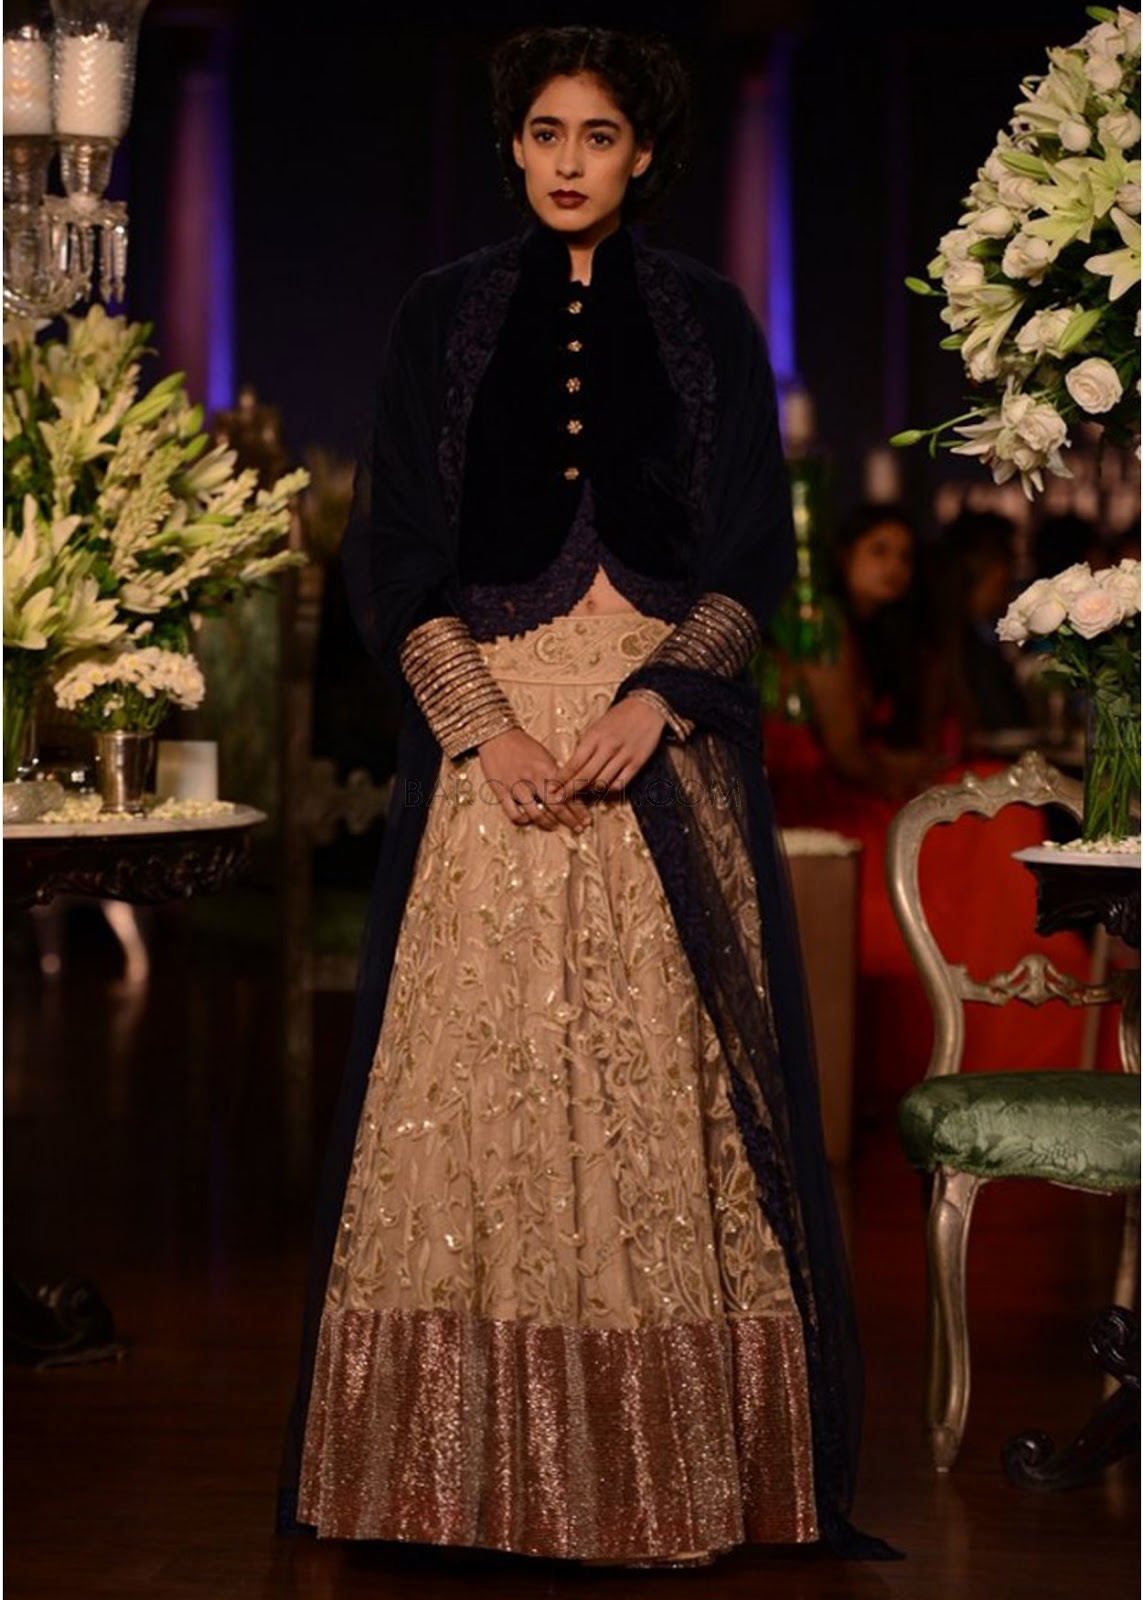 Manish malhotra bridal collection 2014 - Manish Malhotra S Collection At Delhi Couture Week 2013